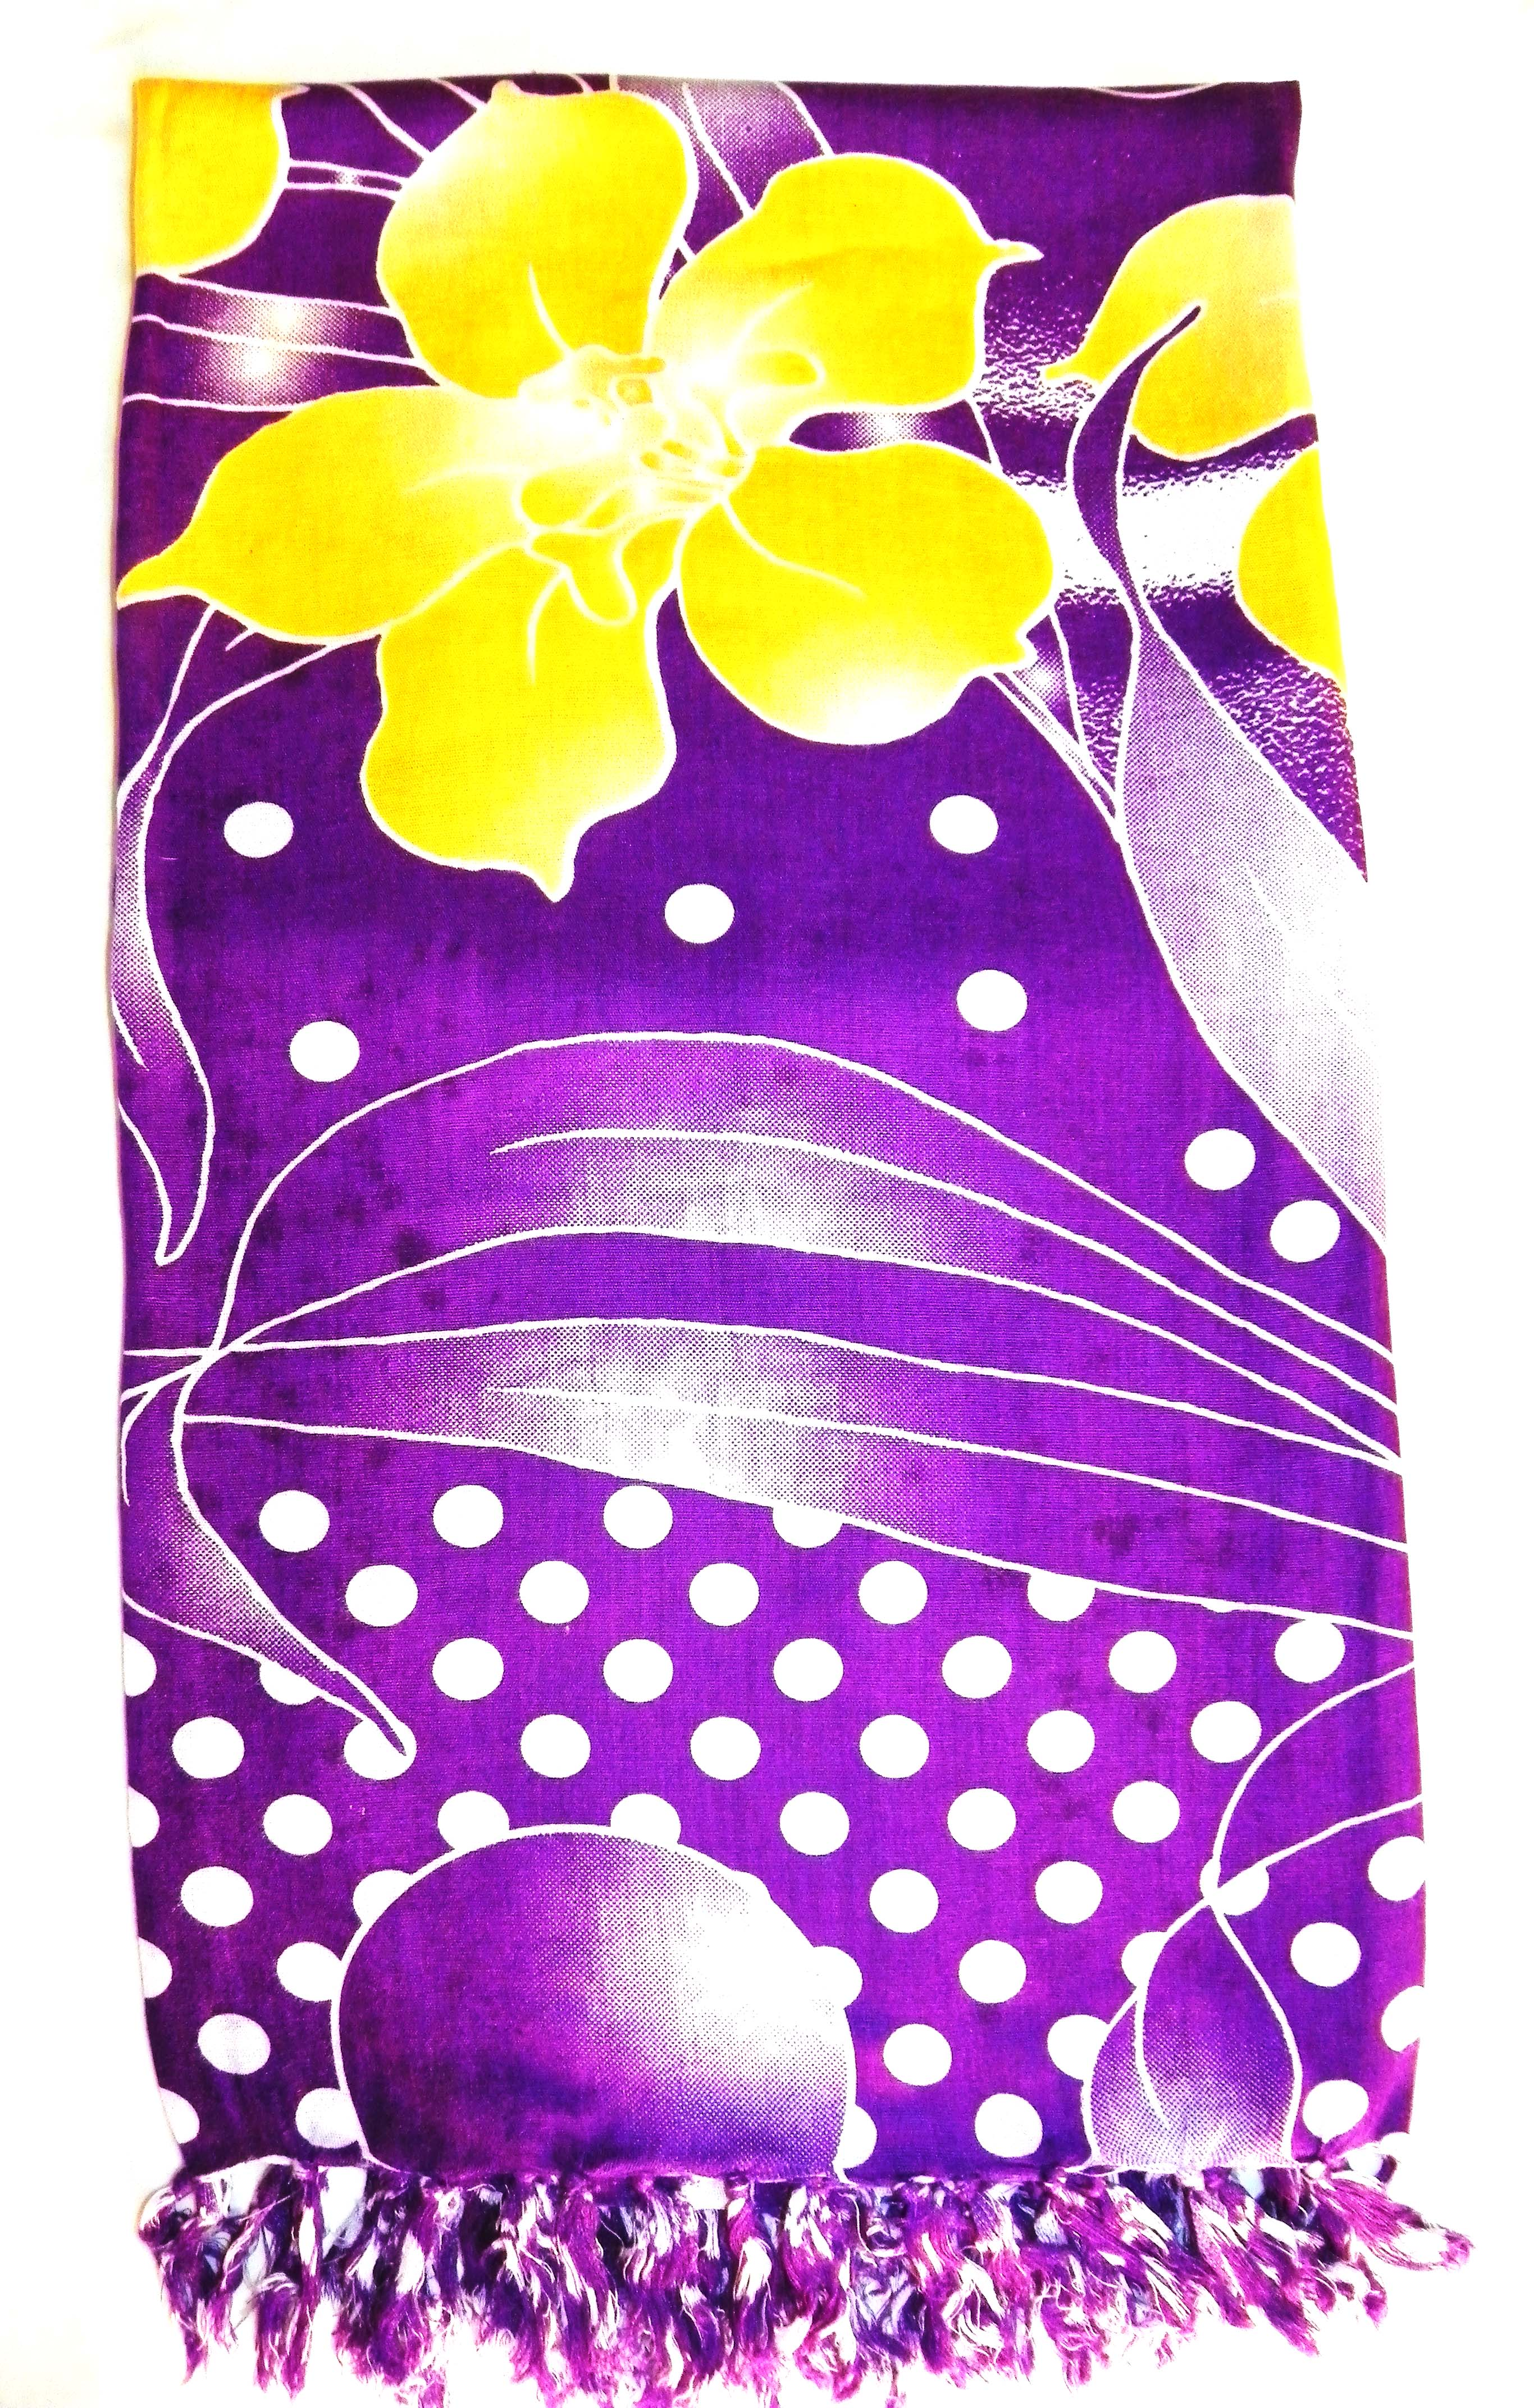 Hhf_sarong_purple_yellow_flowers_full_original